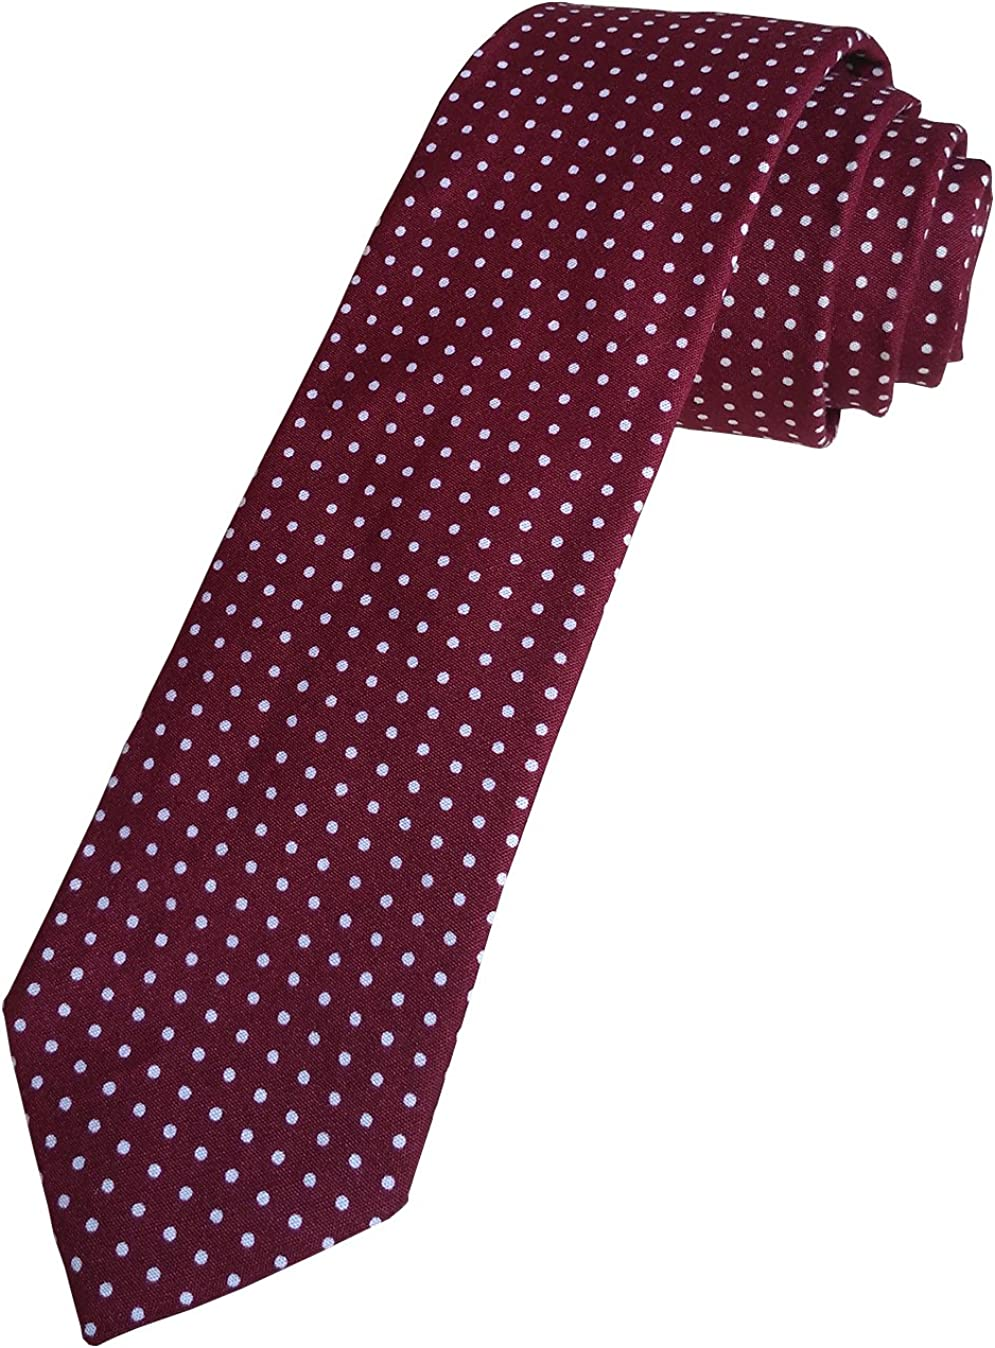 Simpowe Mens 2.36 Inches Skinny Striped Tie and Pocket Square Set